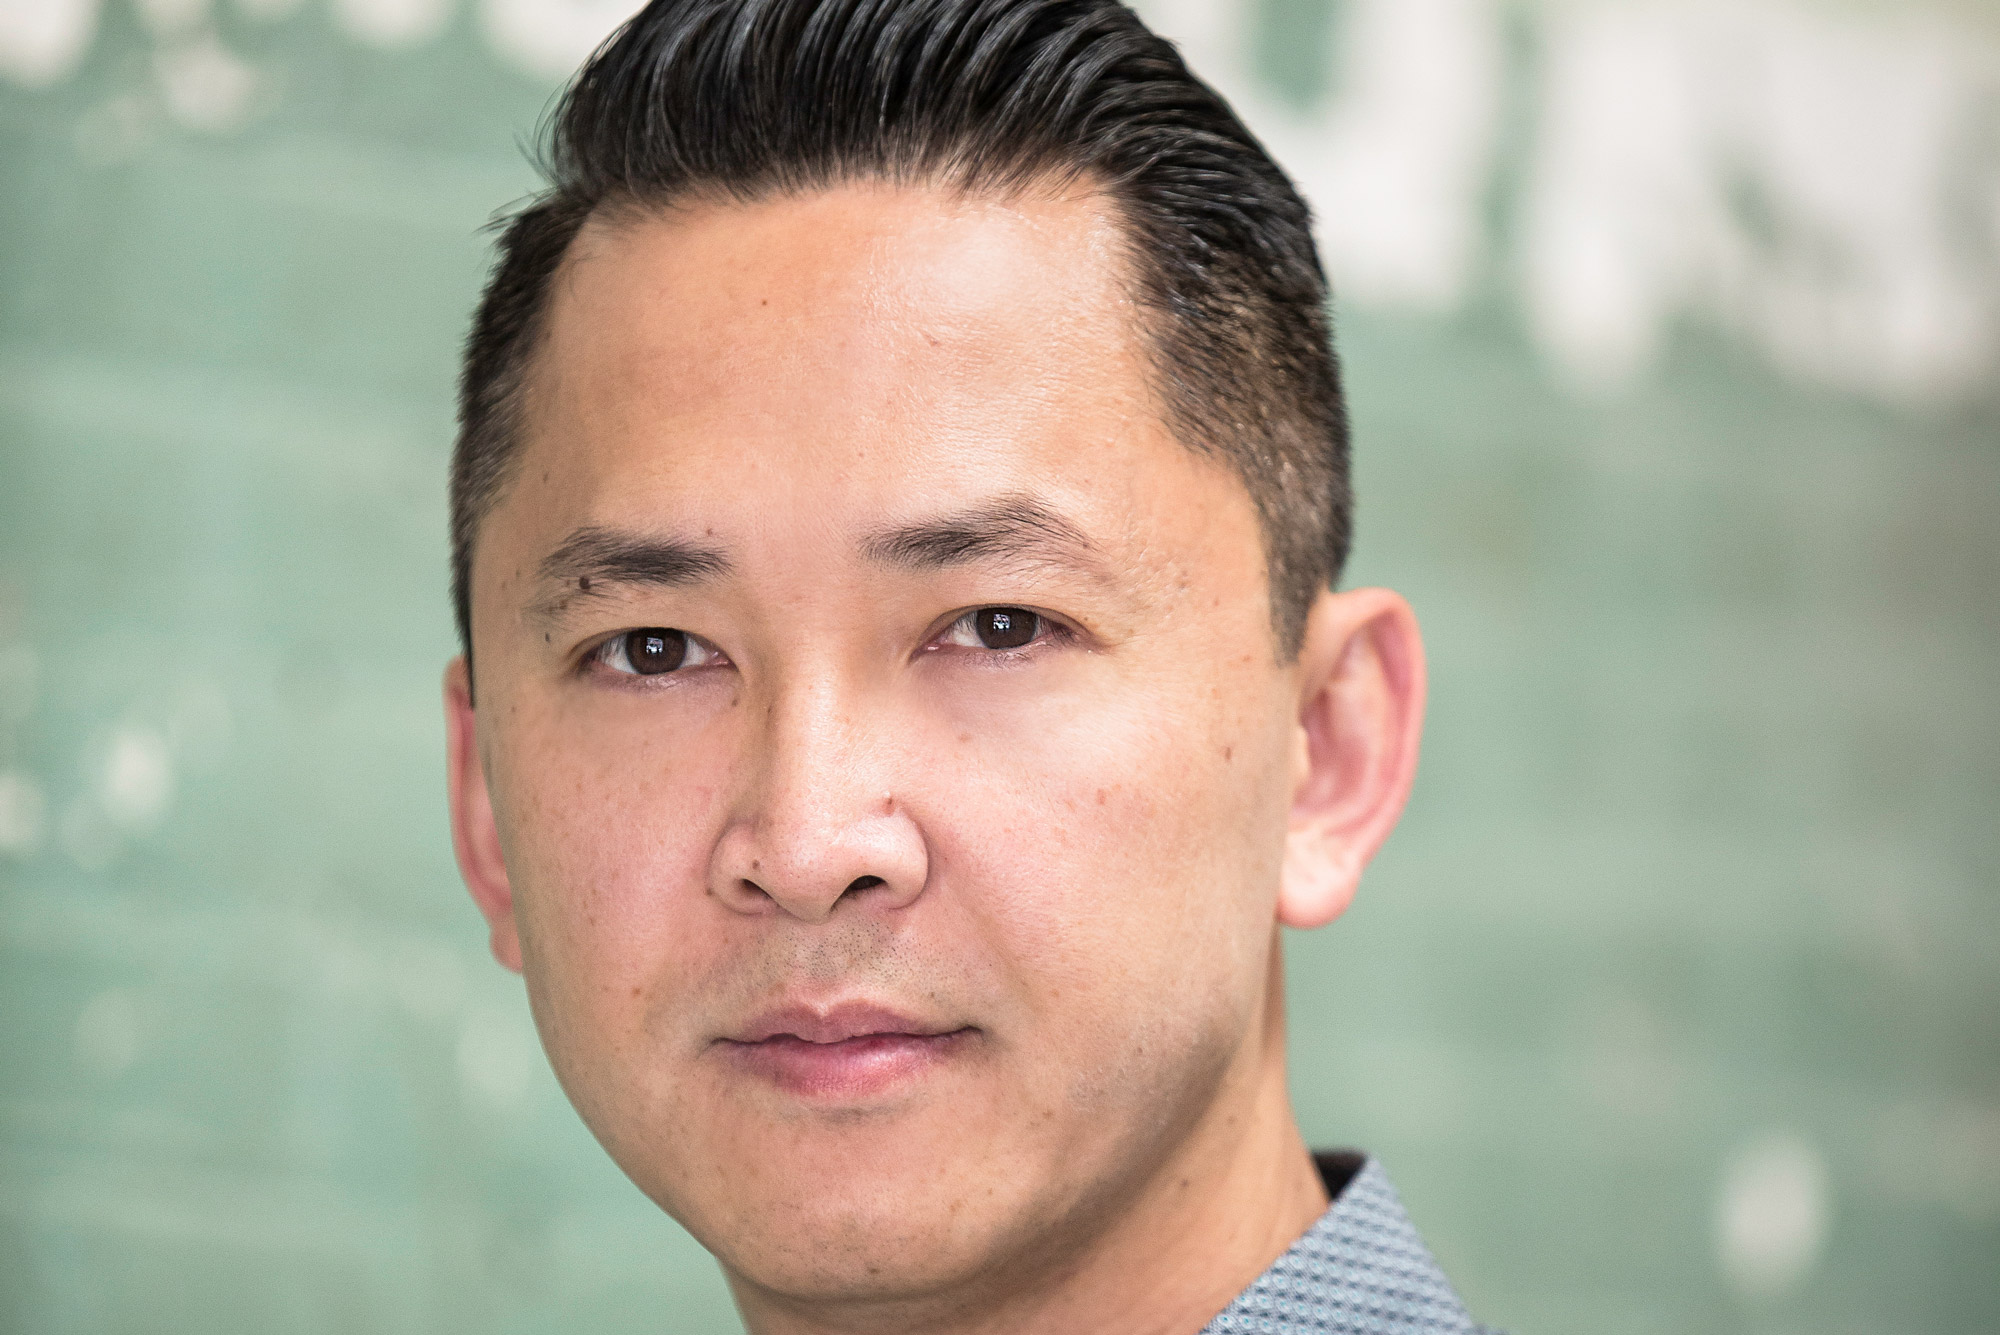 A portrait of Viet Thanh Nguyen who will be delivering the 2019 Ha Jin Lecture